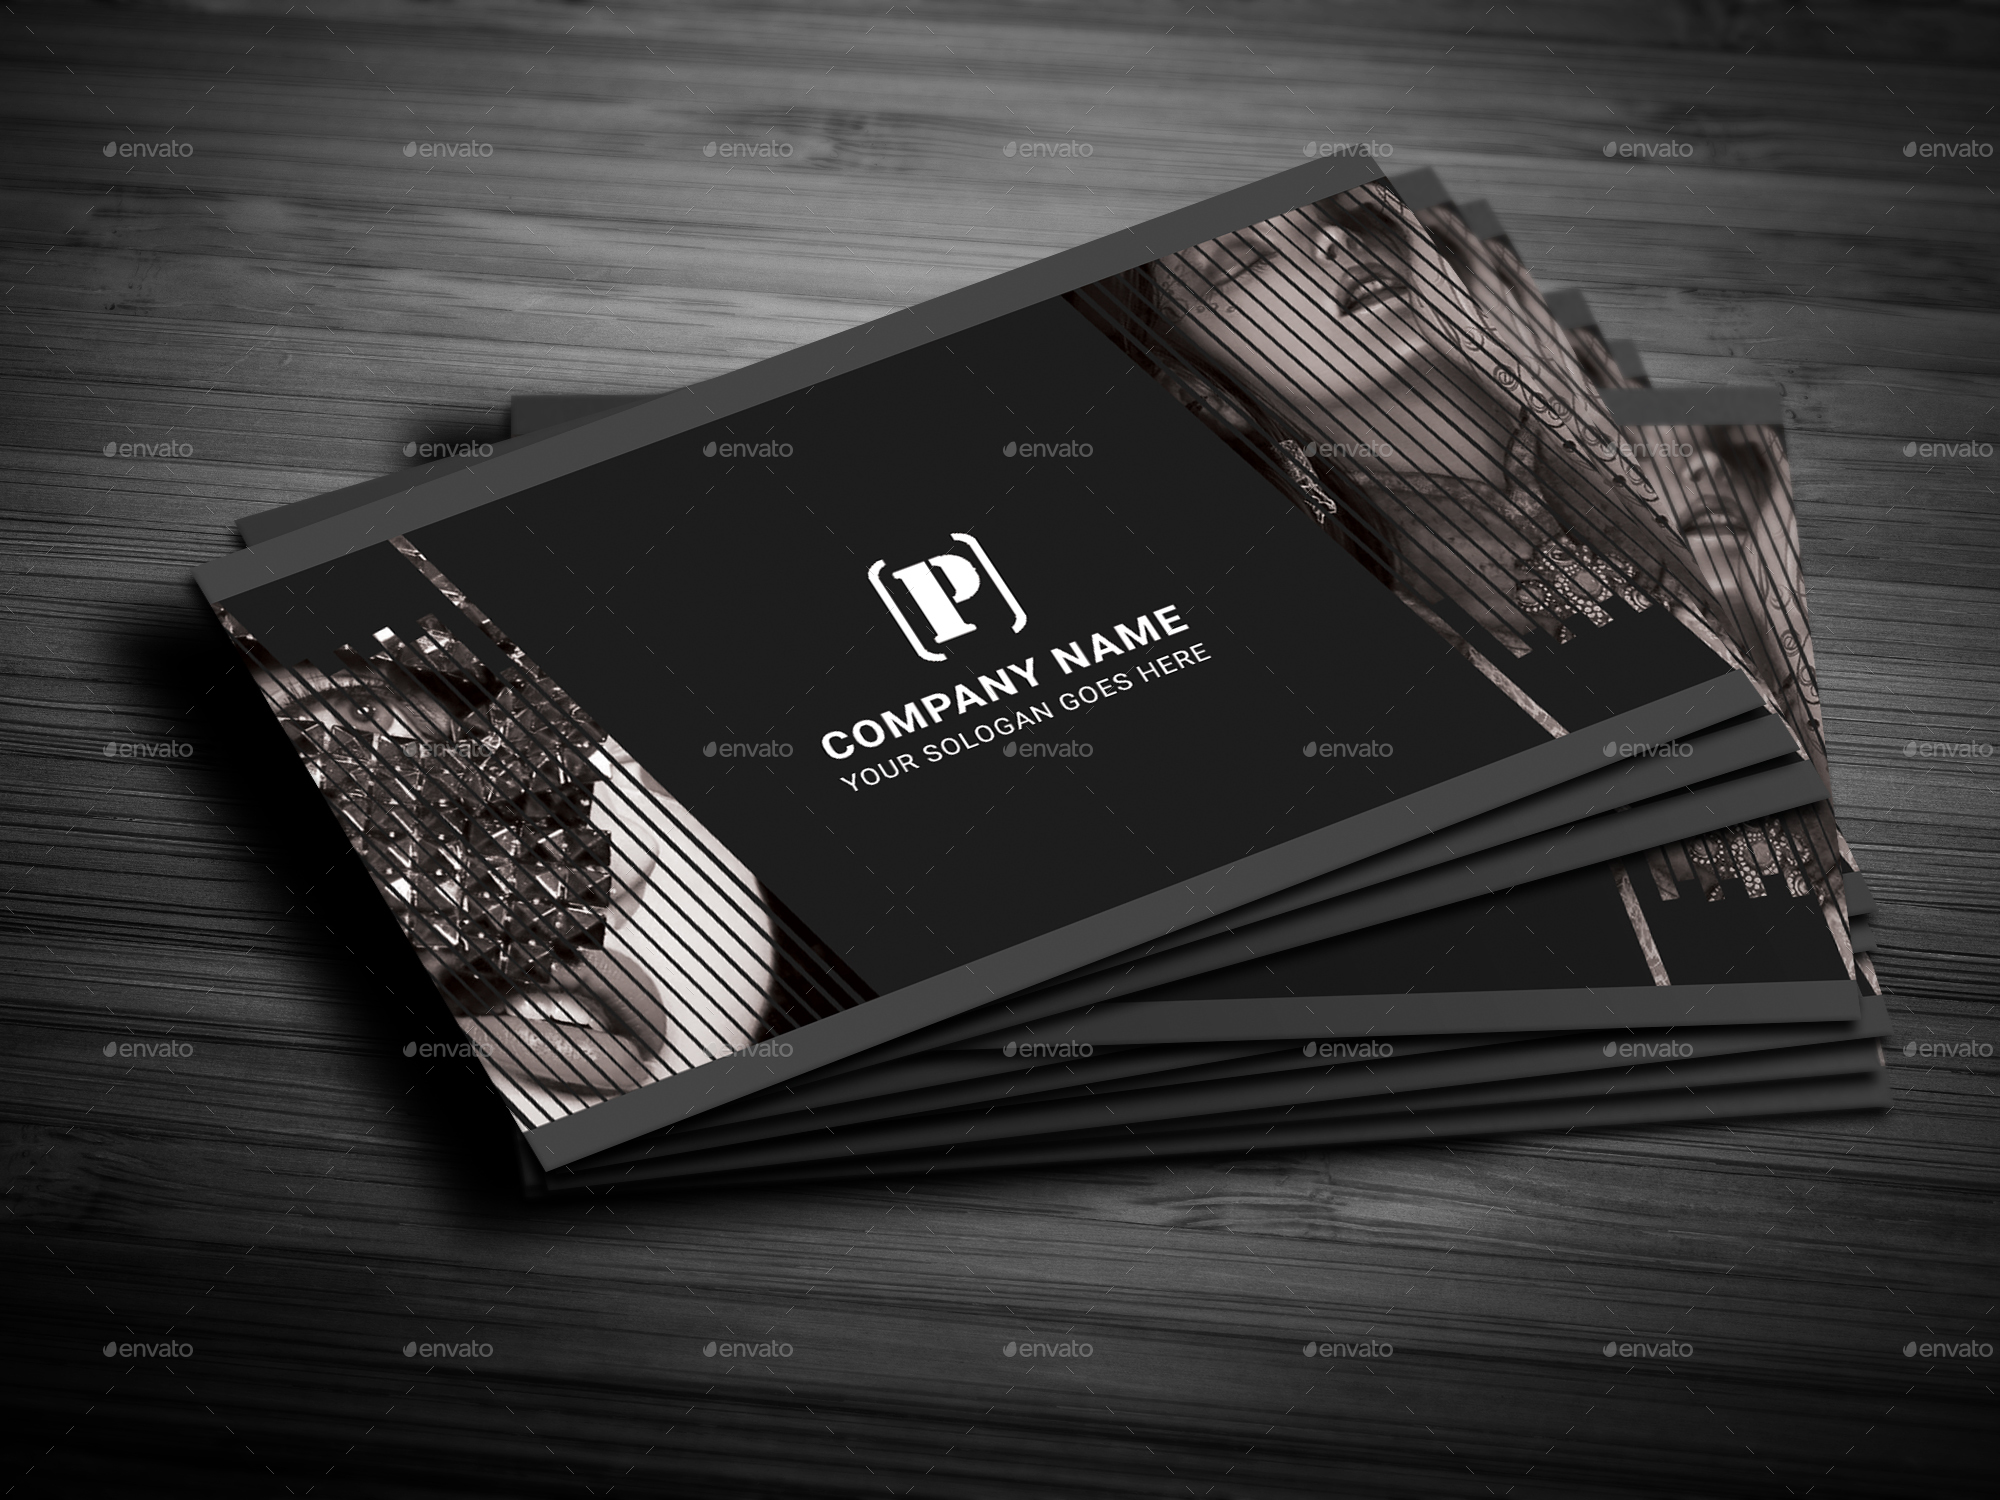 Fashion photography business card by deviserpark graphicriver fashion photography business card business cards print templates 01screenshotg 02screenshotg 03screenshotg magicingreecefo Gallery